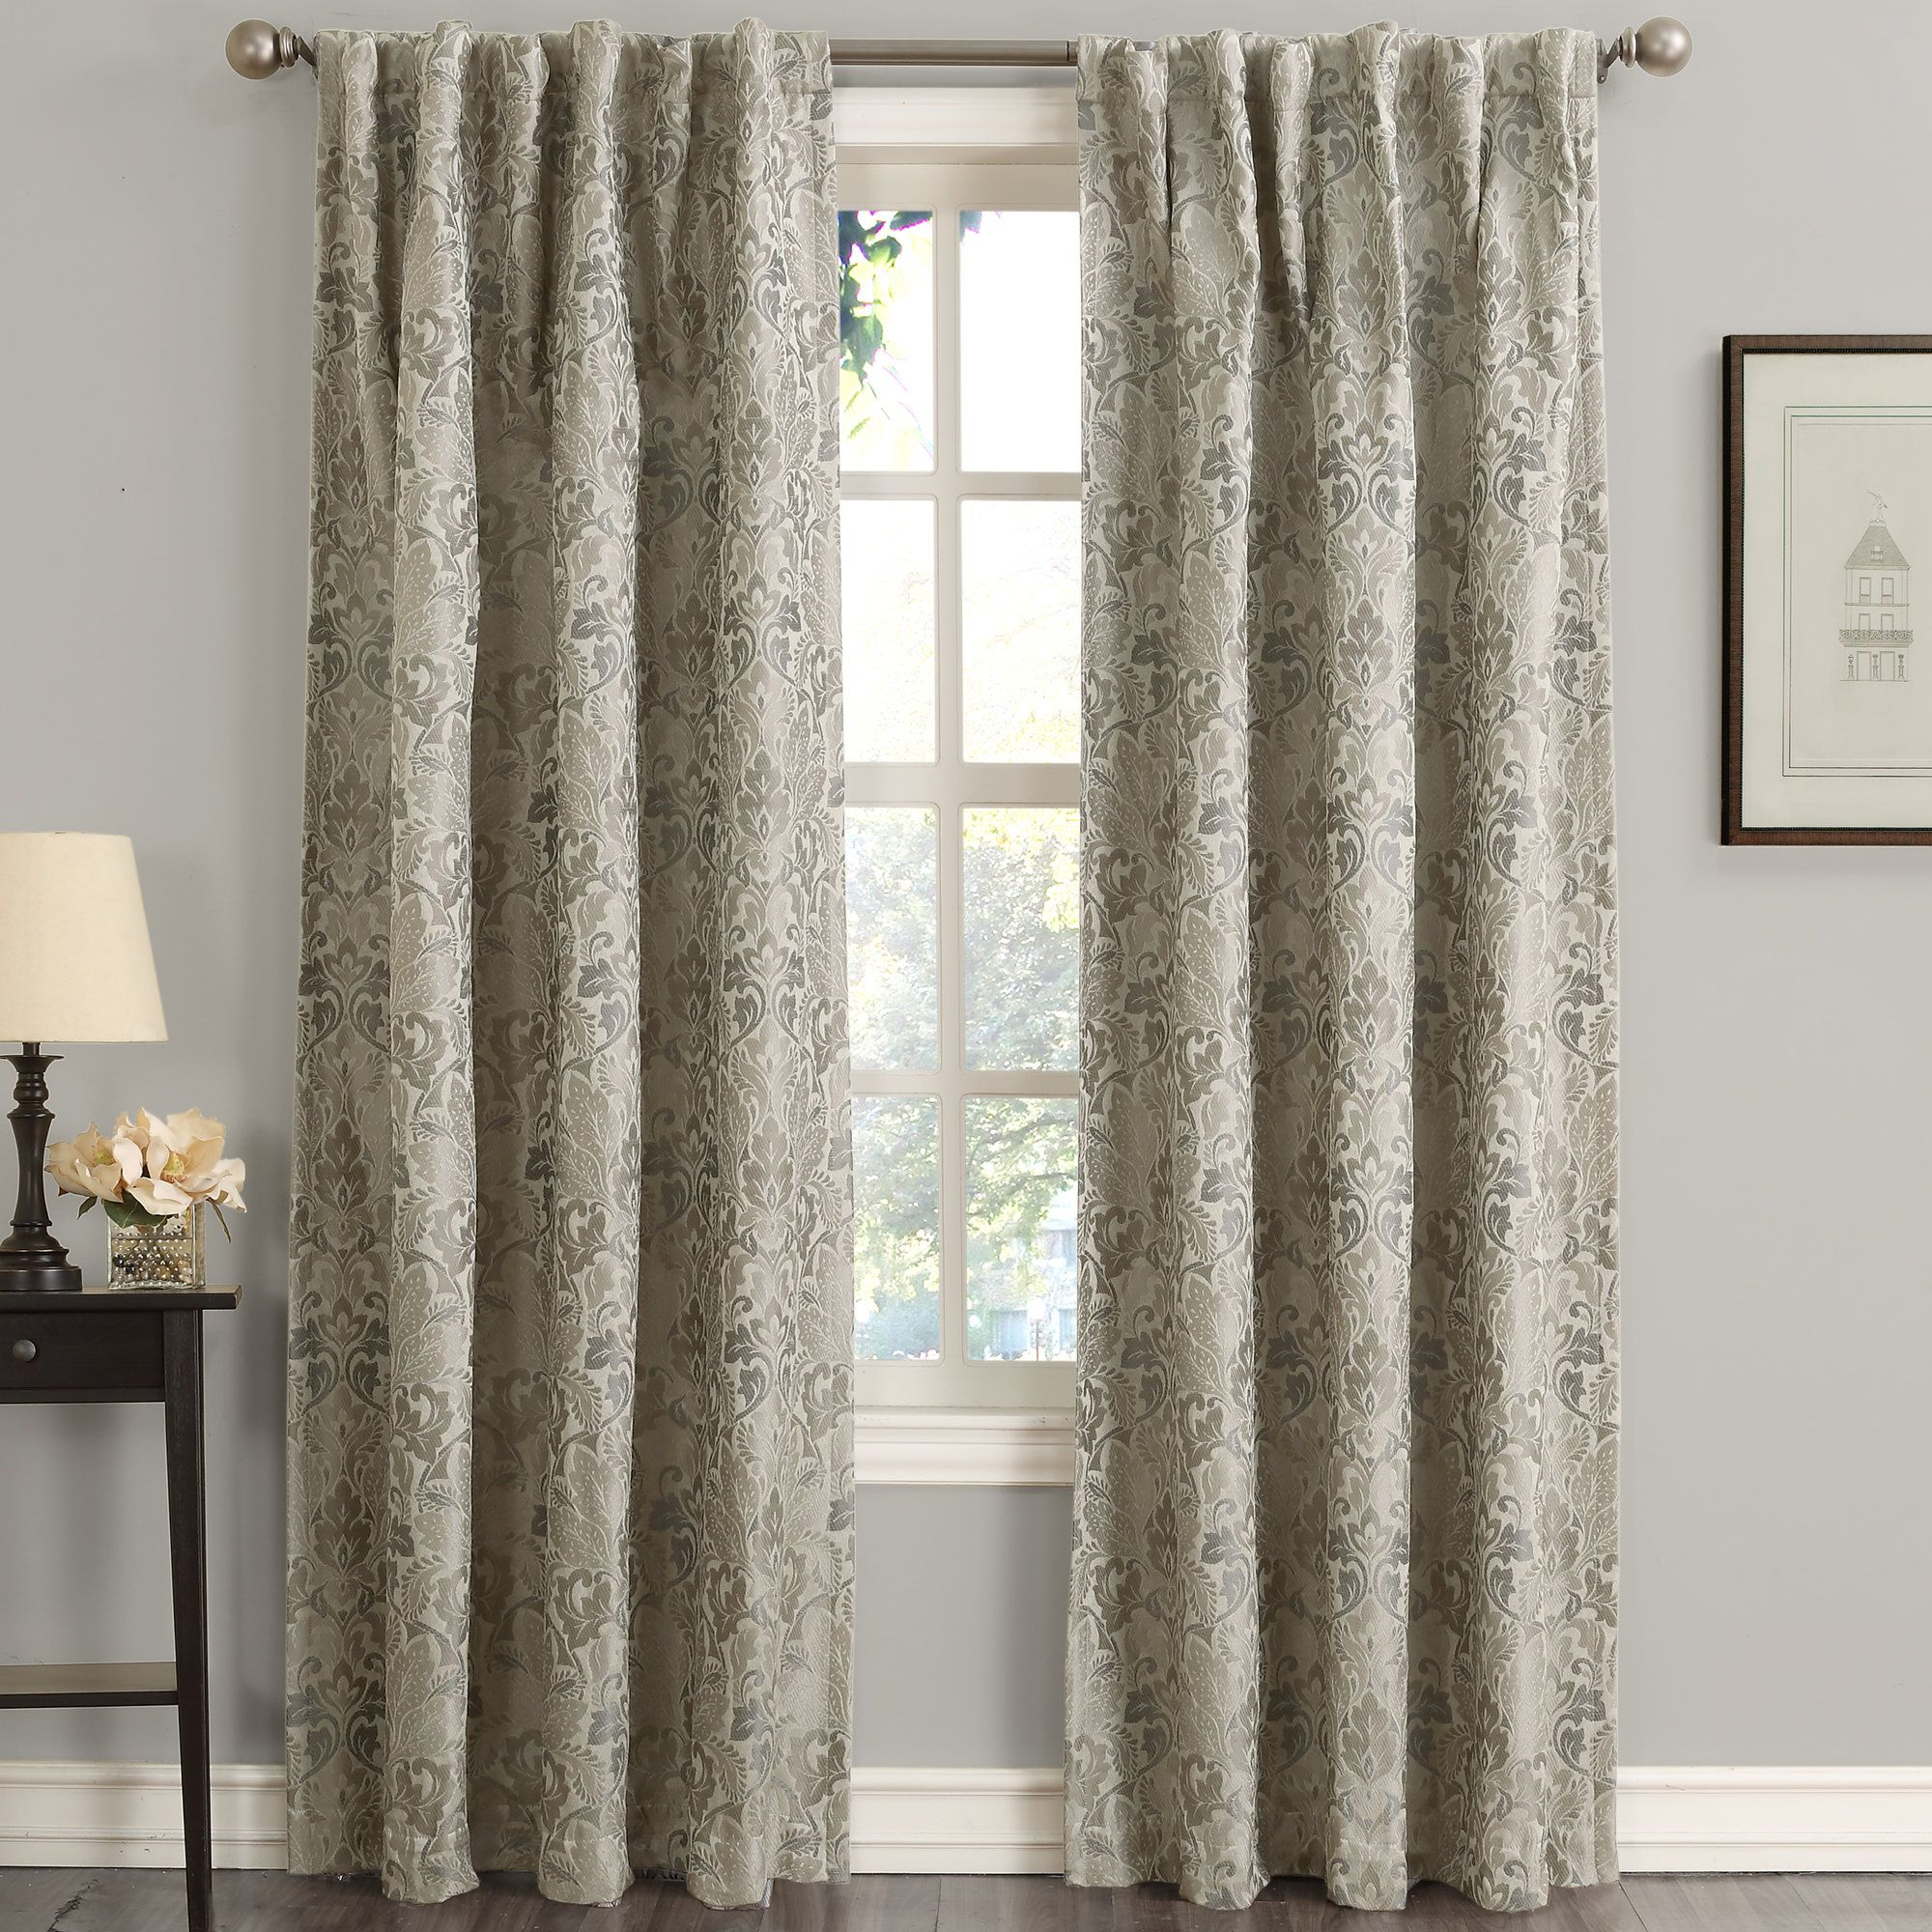 Mayfield Woven Floral Energy Efficient Damask Blackout Rod Pocket Single